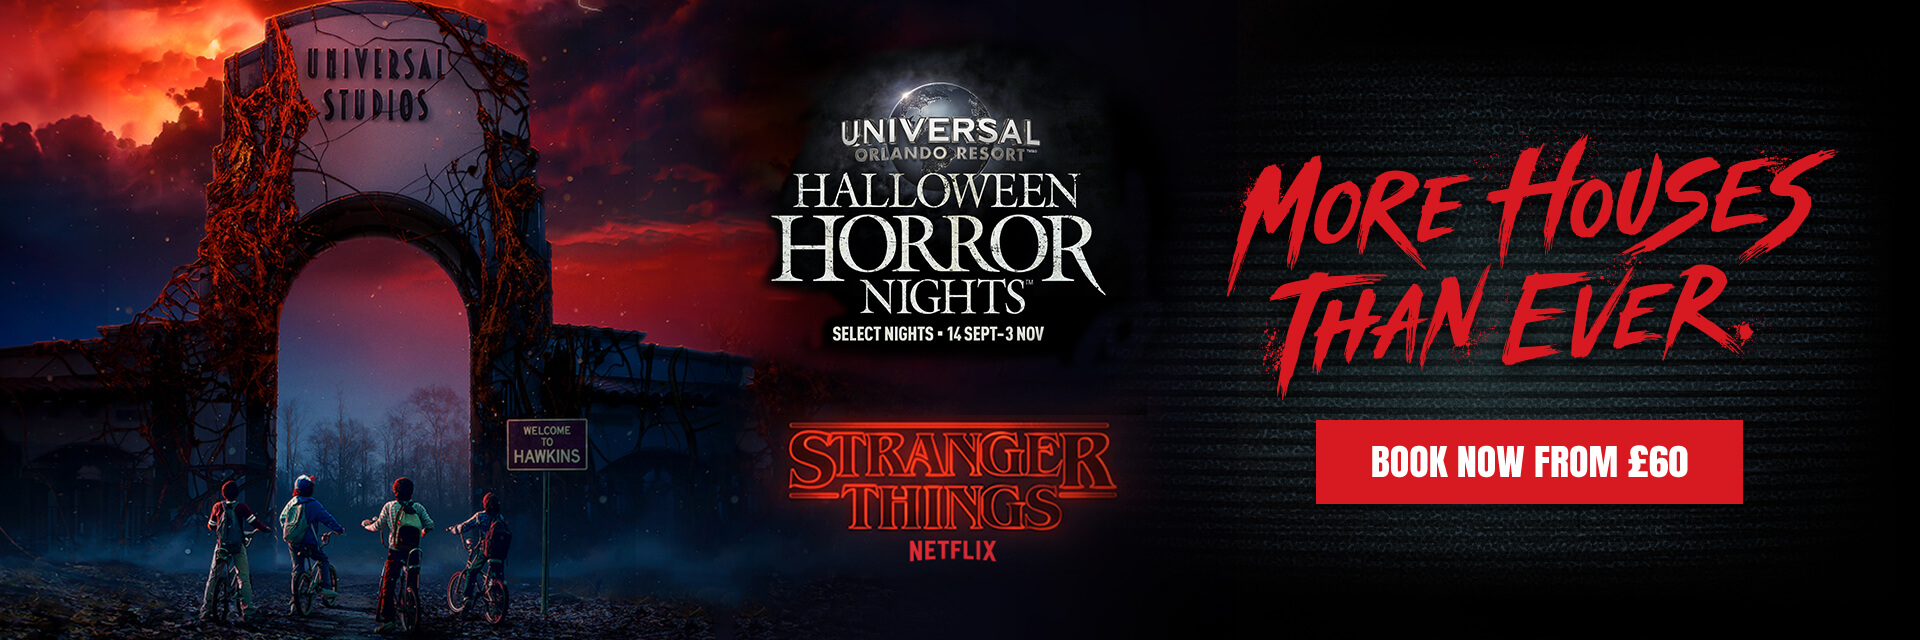 Halloween Horror Nights 2018 at Universal Orlando Resort